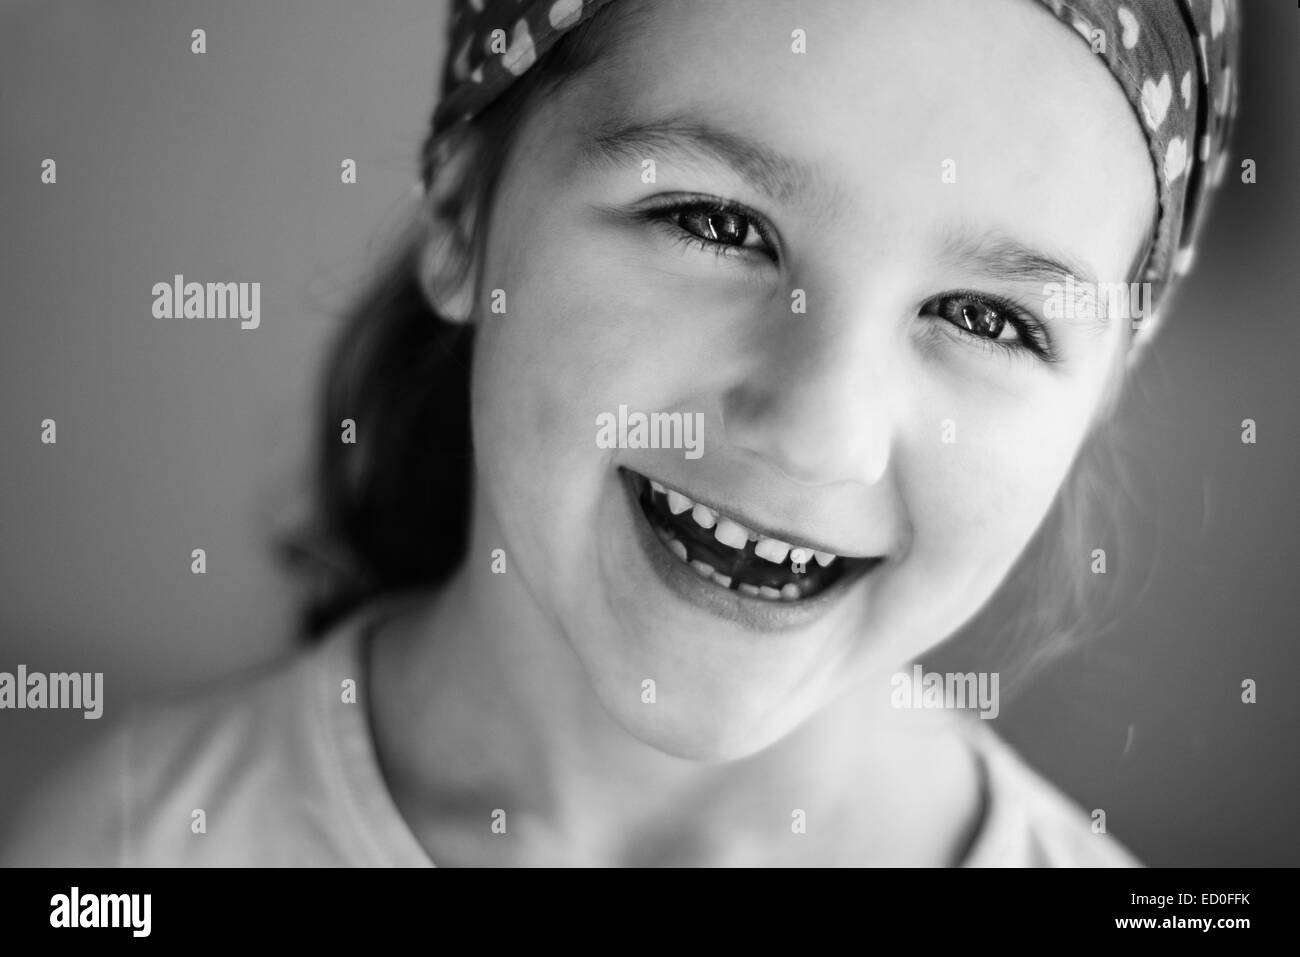 Portrait of smiling girl (4-5) Photo Stock